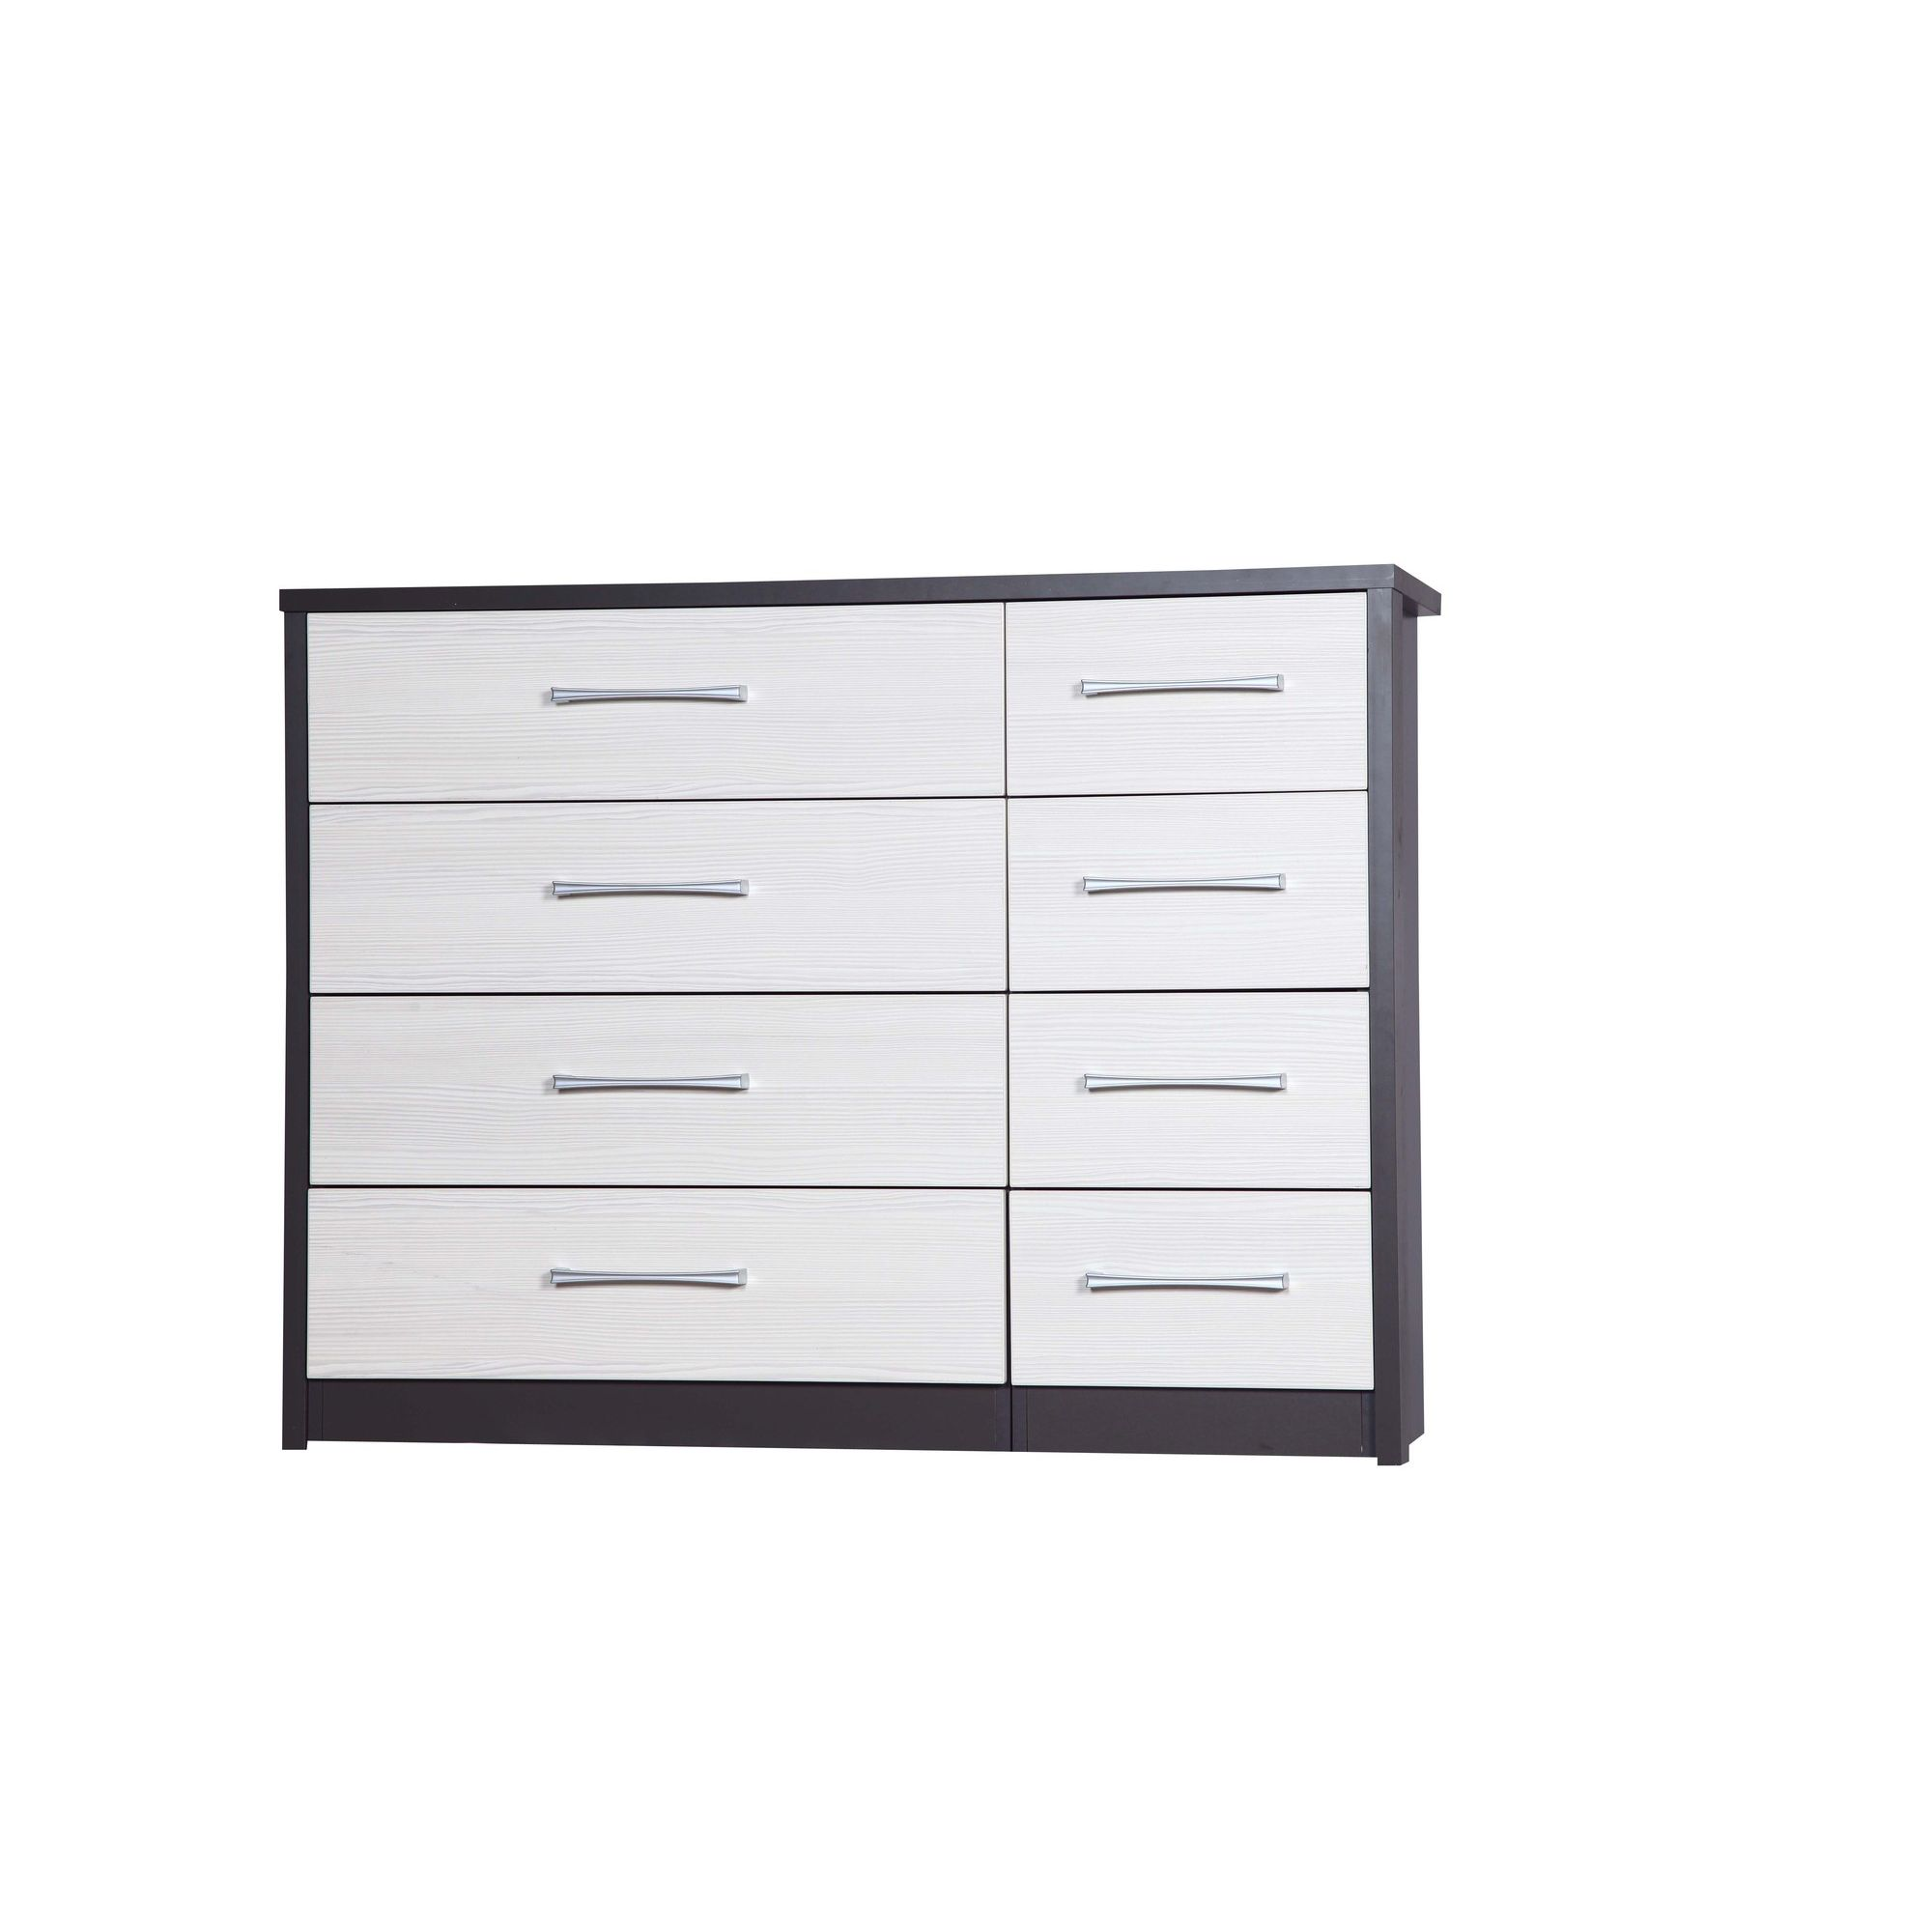 Alto Furniture Avola 8 Drawer Double Chest - Grey Carcass With White Avola at Tesco Direct